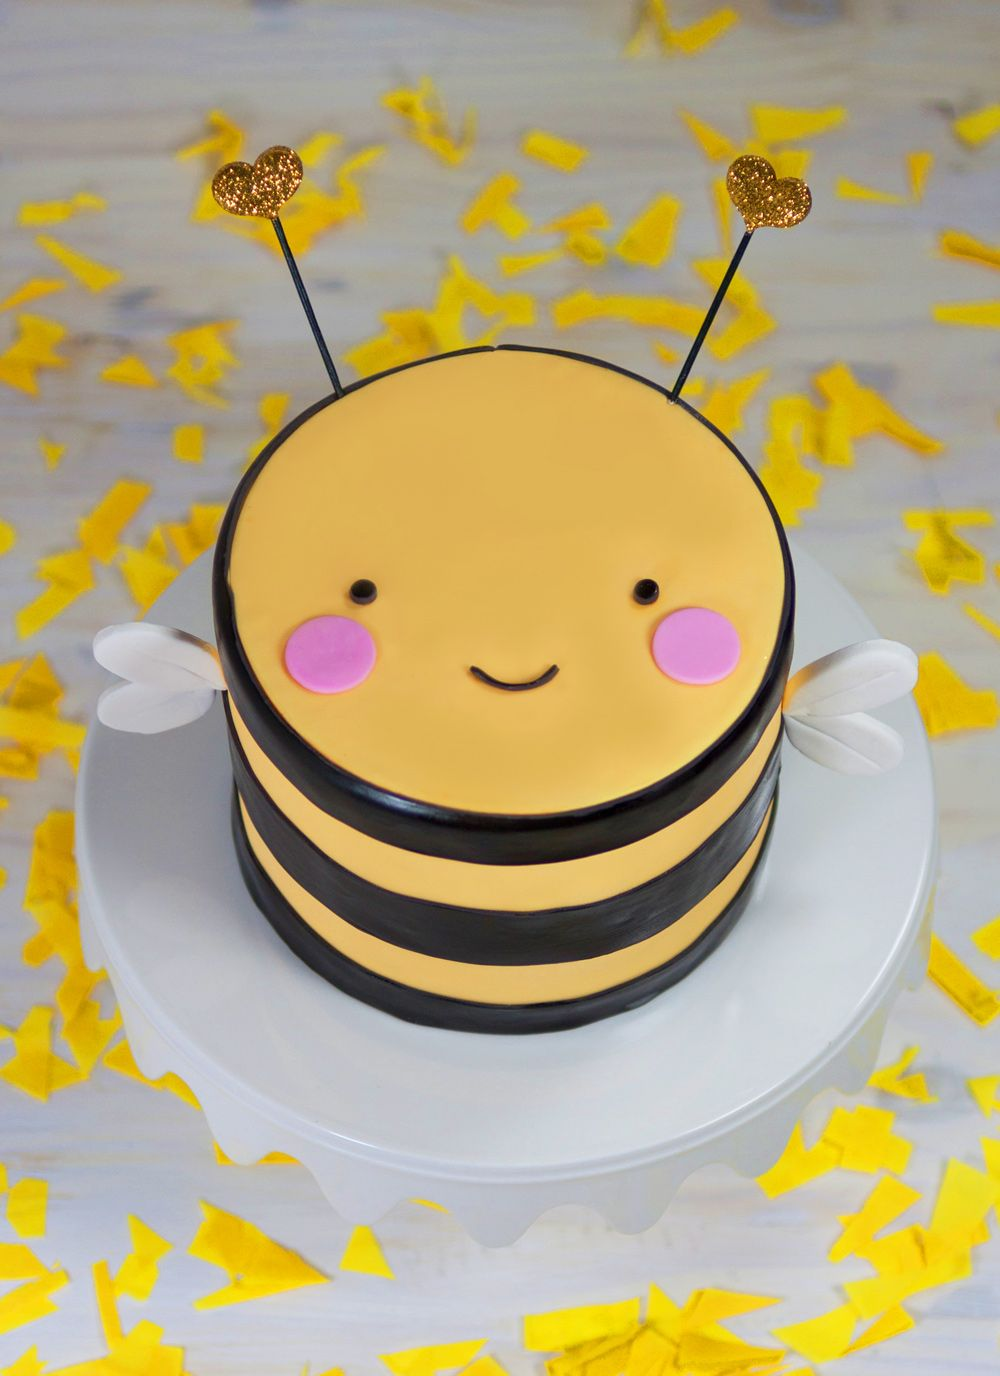 Bumblebee Cake by Whipped Bakeshop in Philadelphia